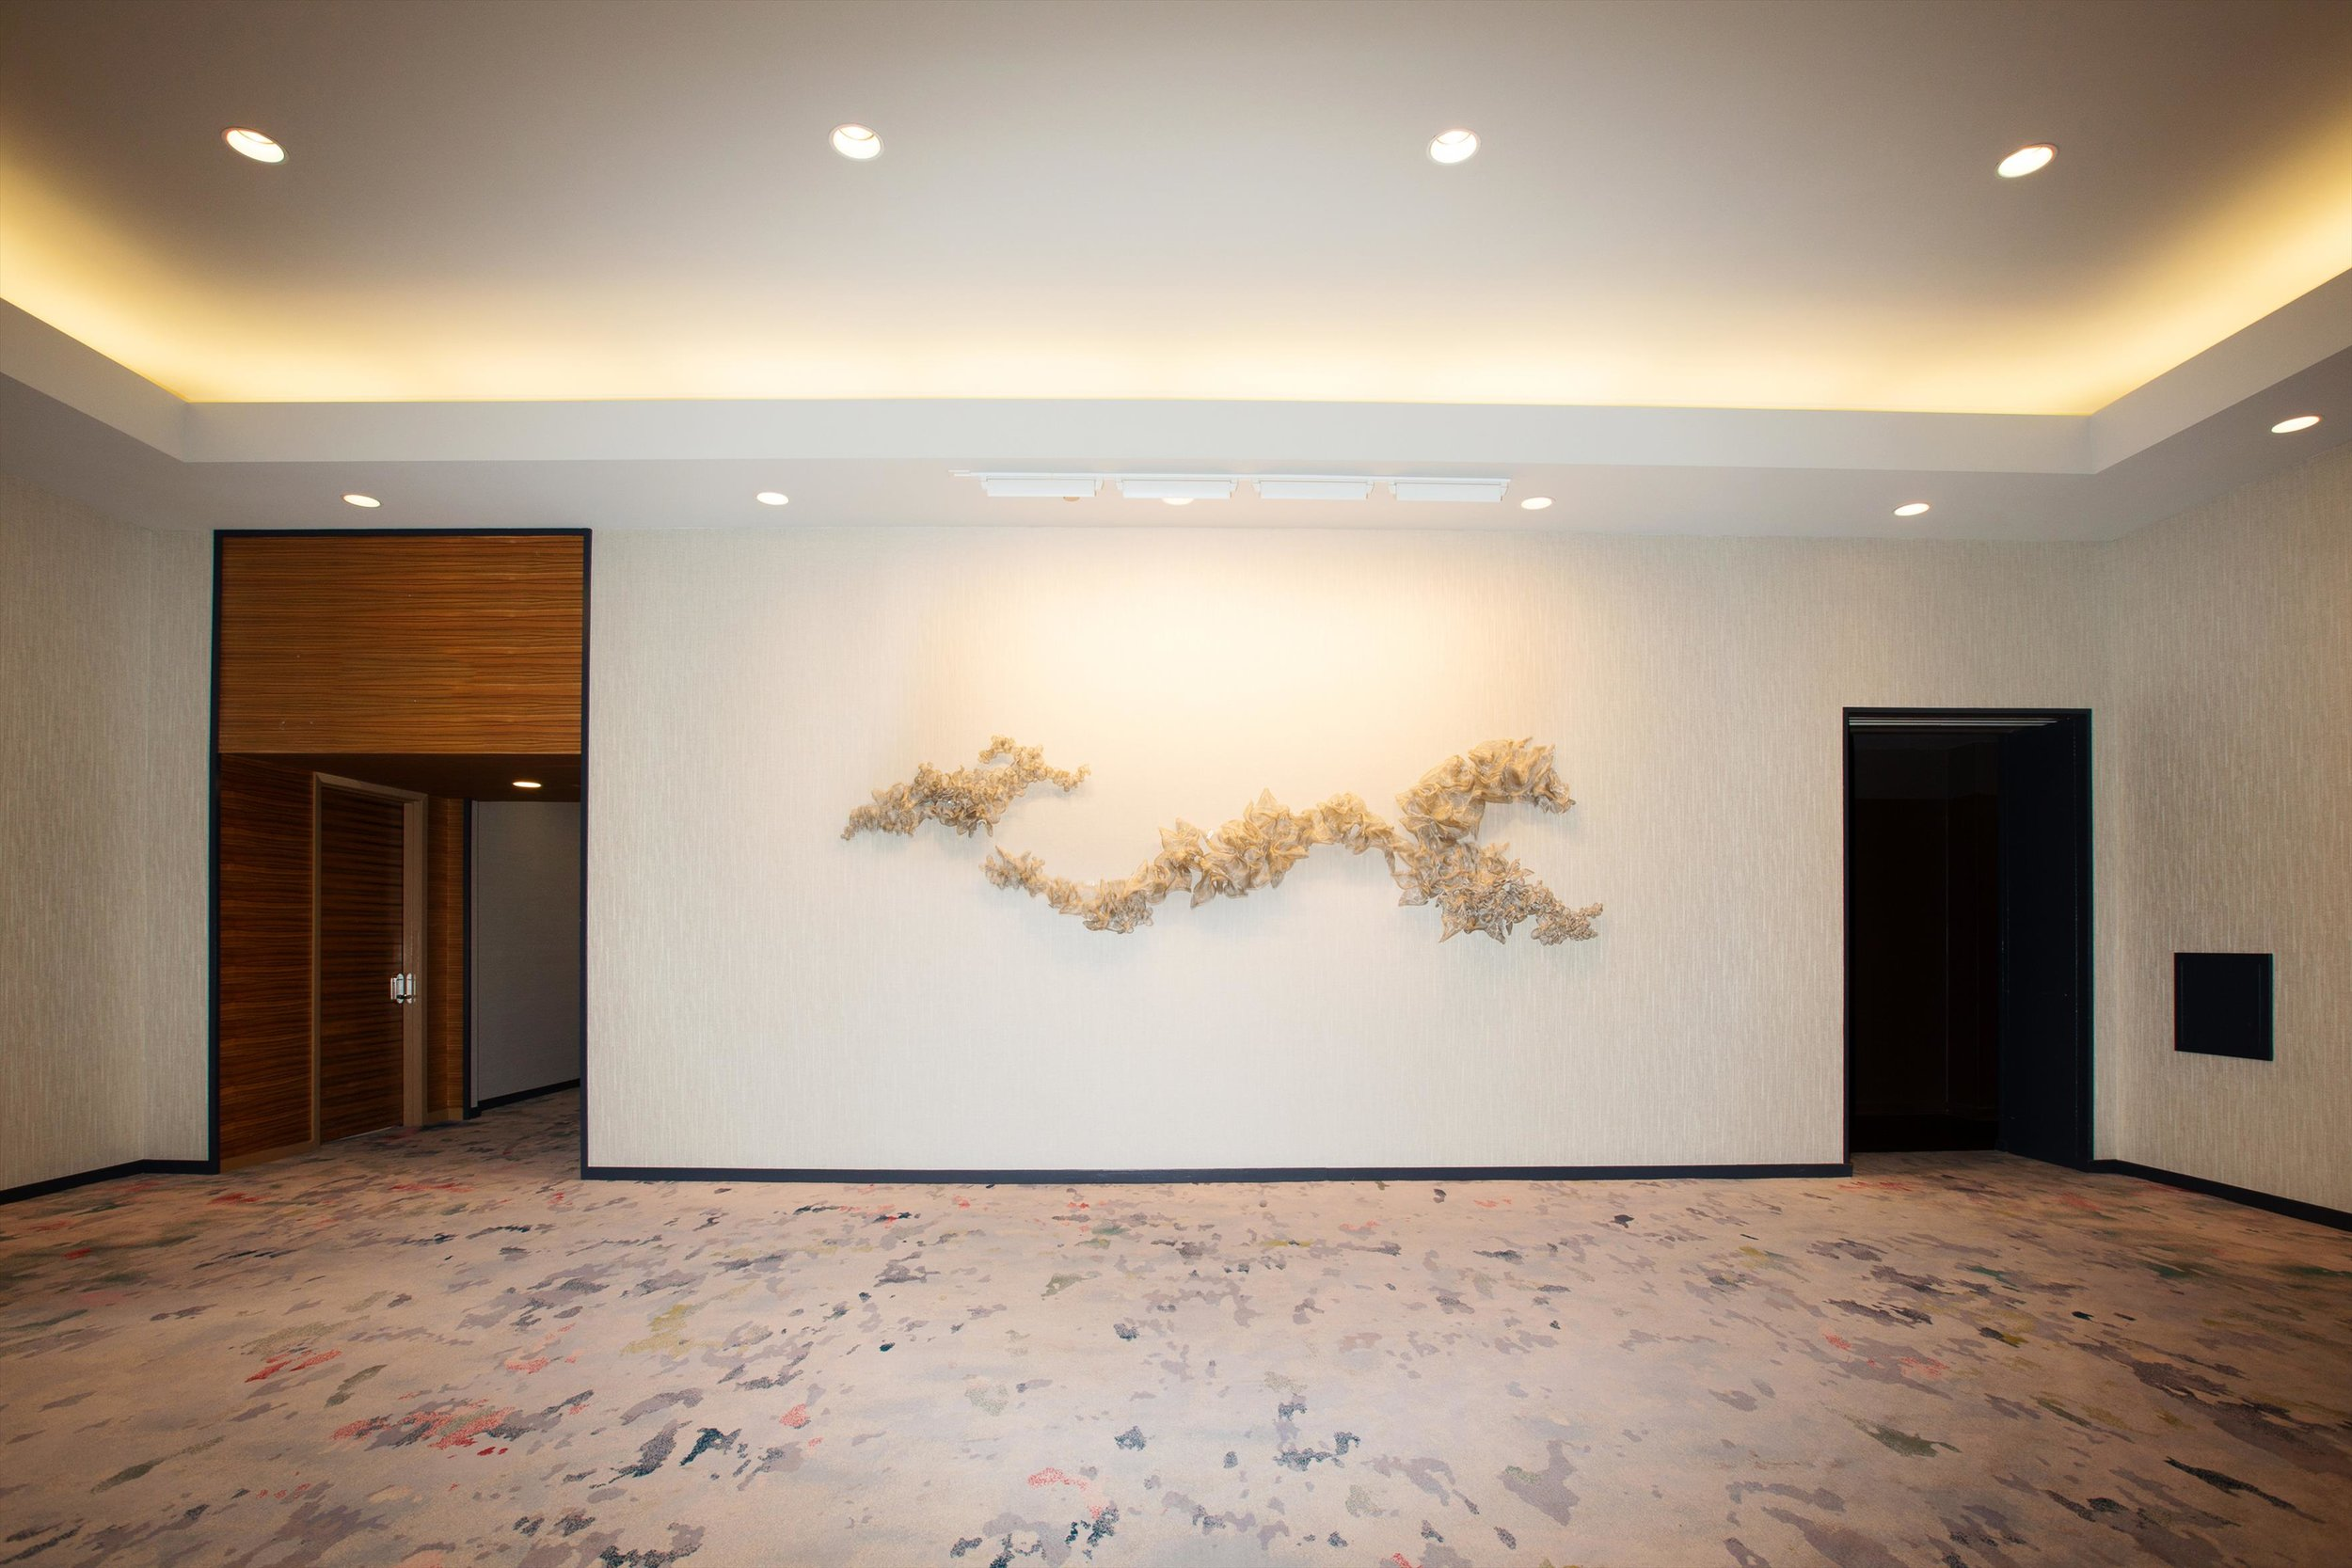 LOEWS, MINNEAPOLIS - Curated by Indiewalls